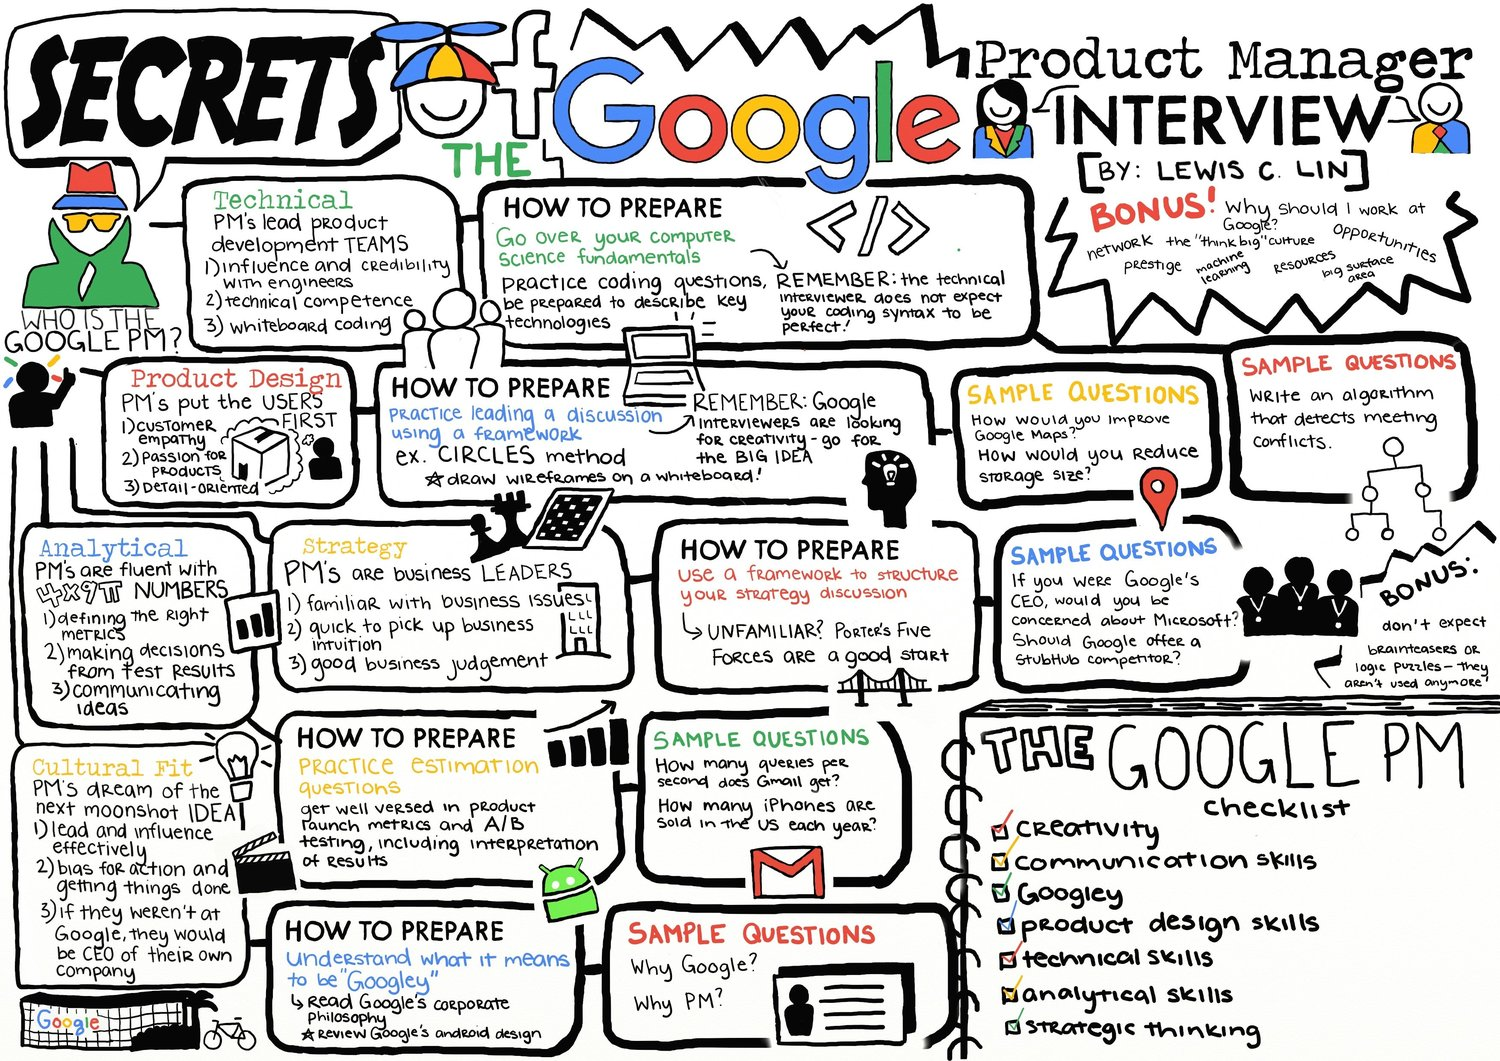 Google Product Manager Interview Cheat Sheet PM Or APM Lewis C Lin